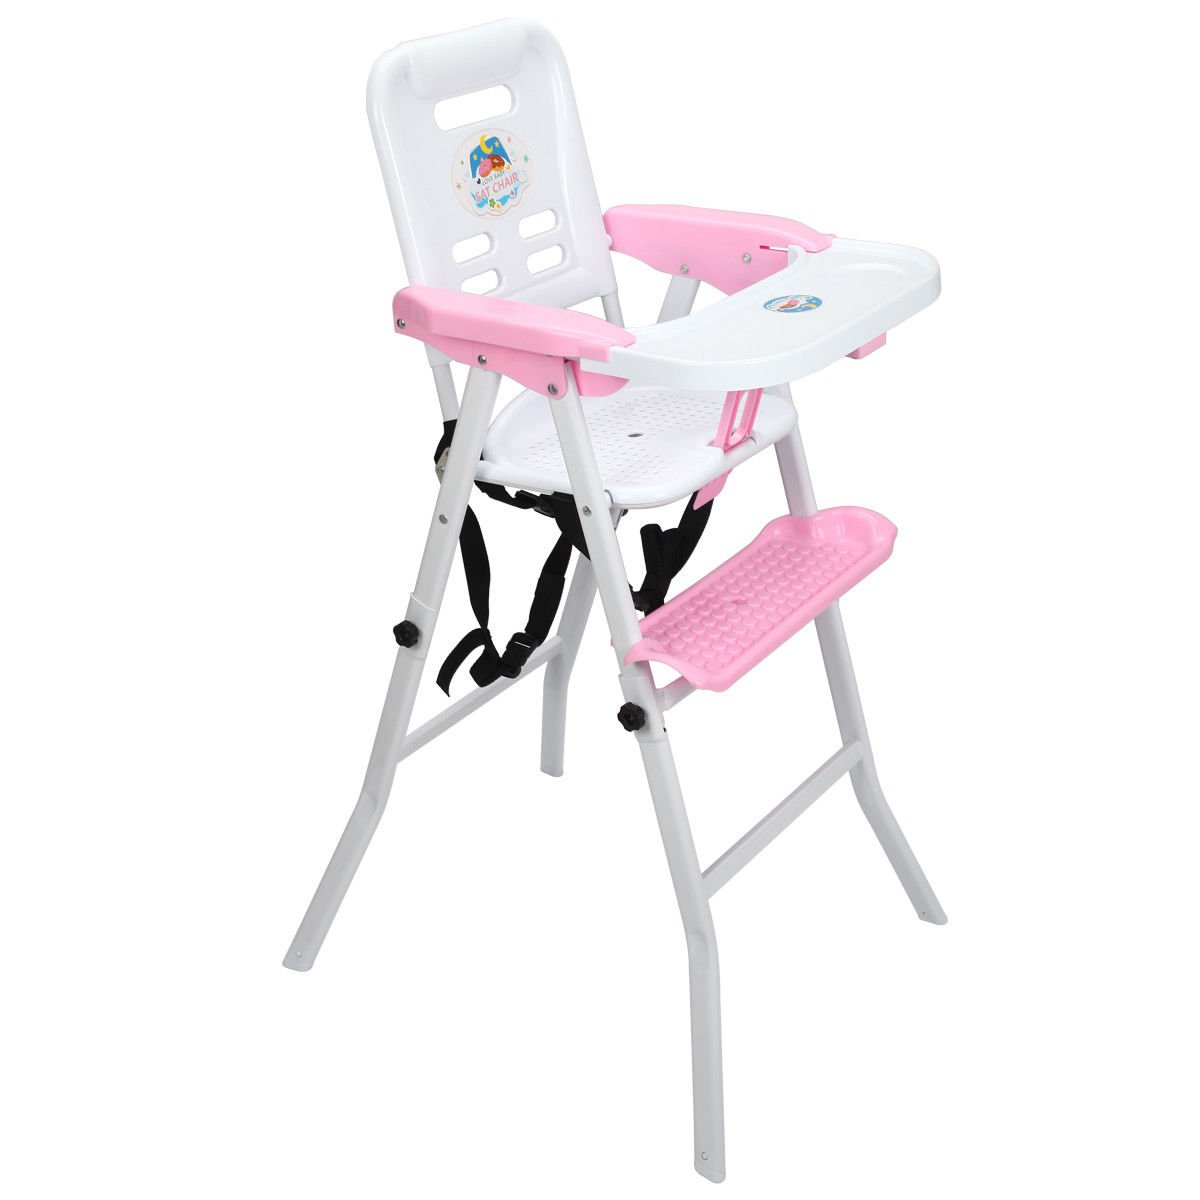 Costzon 4 in1 Baby Highchair, Detachable Rocking Feeding Booster with Safety Belt (Pink)